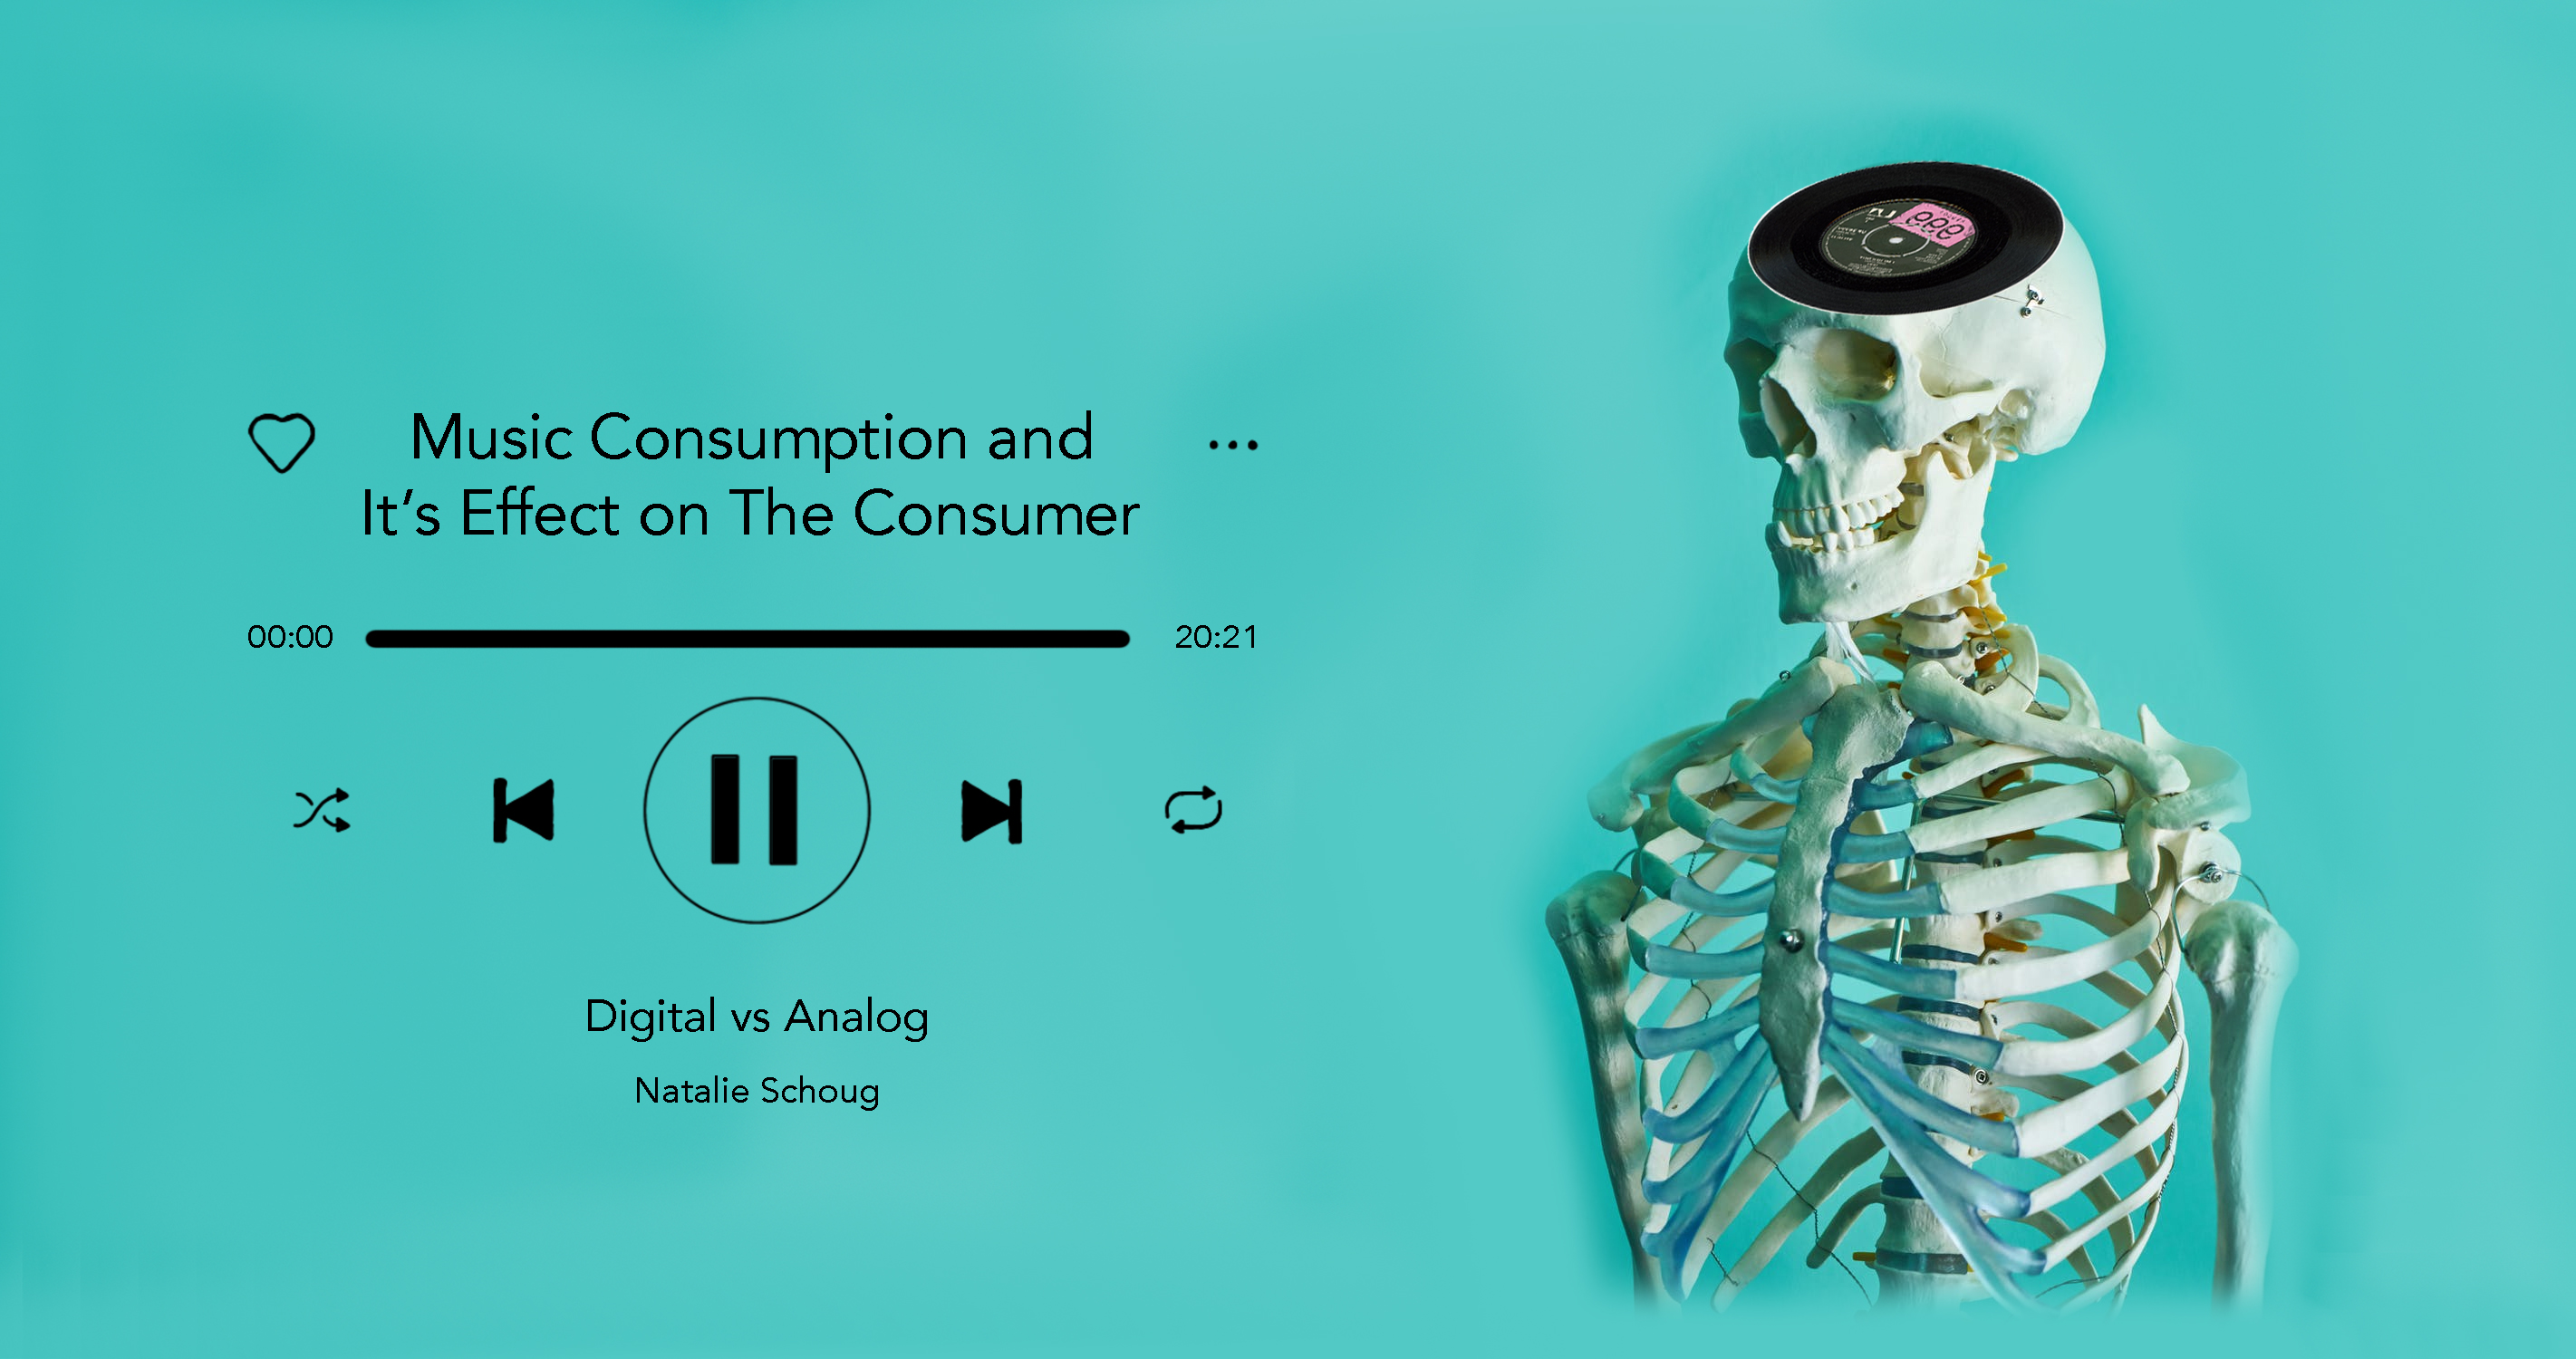 Music Consumption and It's Effect on The Consumer: Digital vs Analog